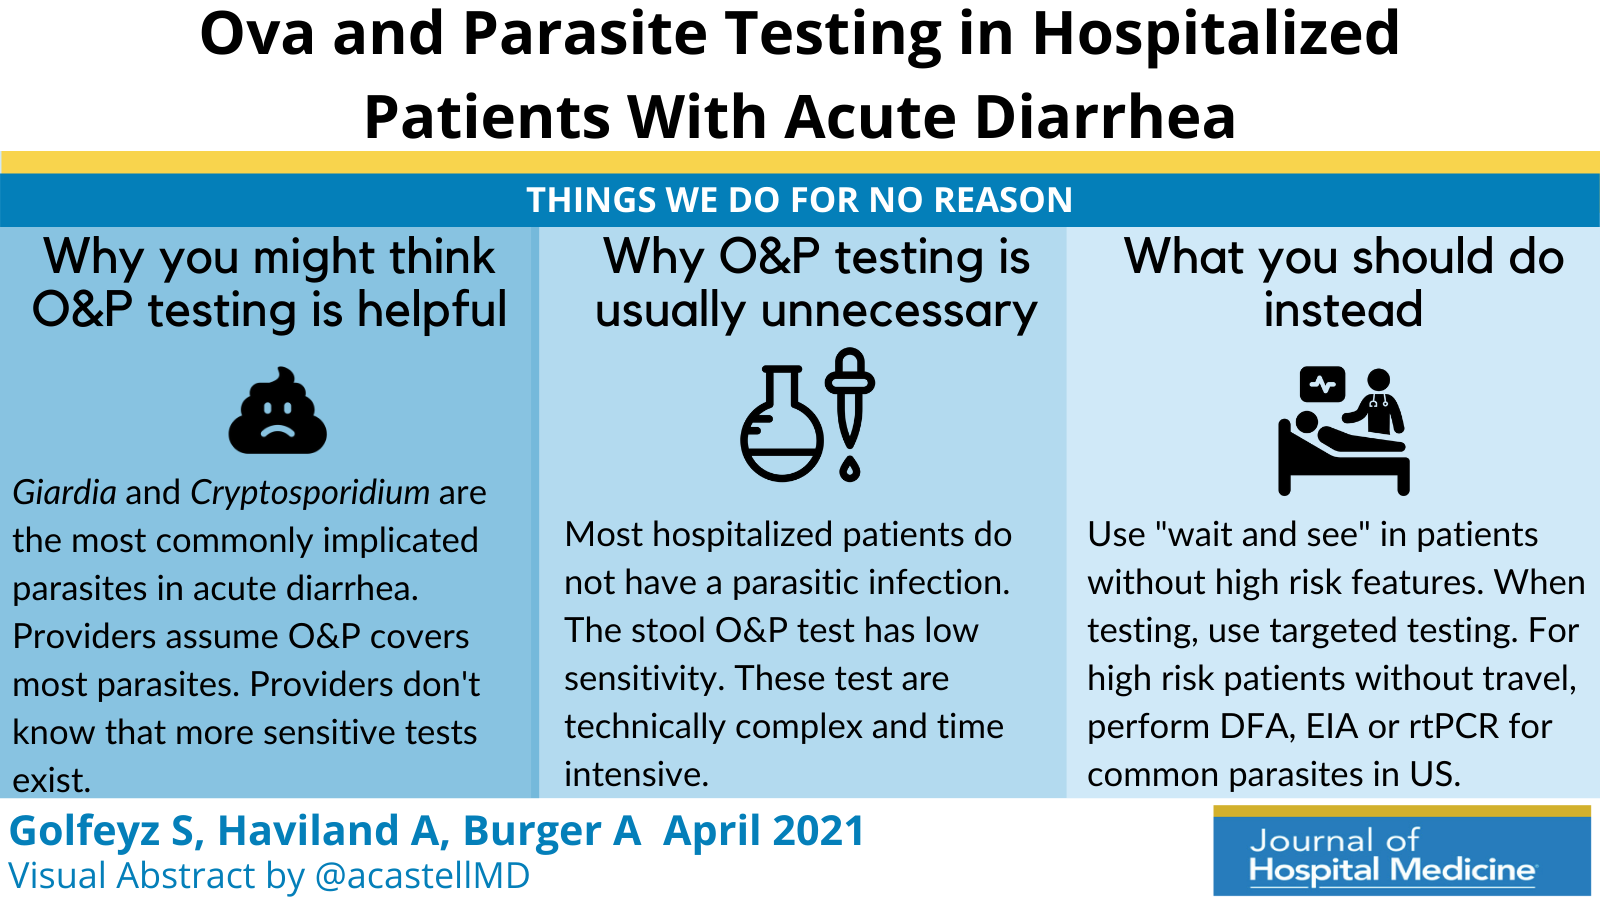 Things We Do for No Reason™: Ova and Parasite Testing in Patients With Acute Diarrhea Arising During Hospitalization